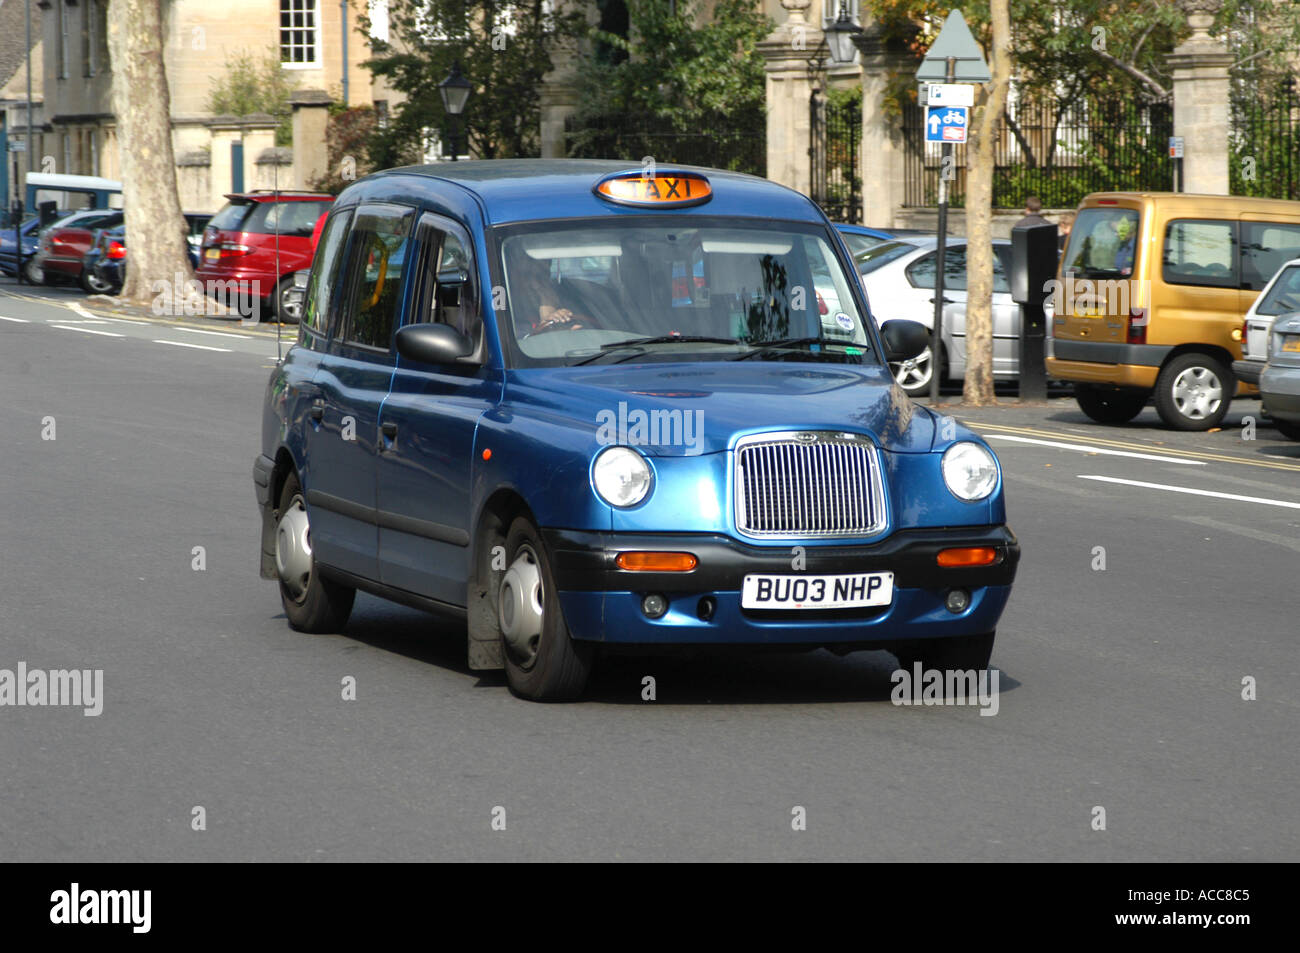 Traditional London taxi hackney cab in St Giles street Oxford England - Stock Image